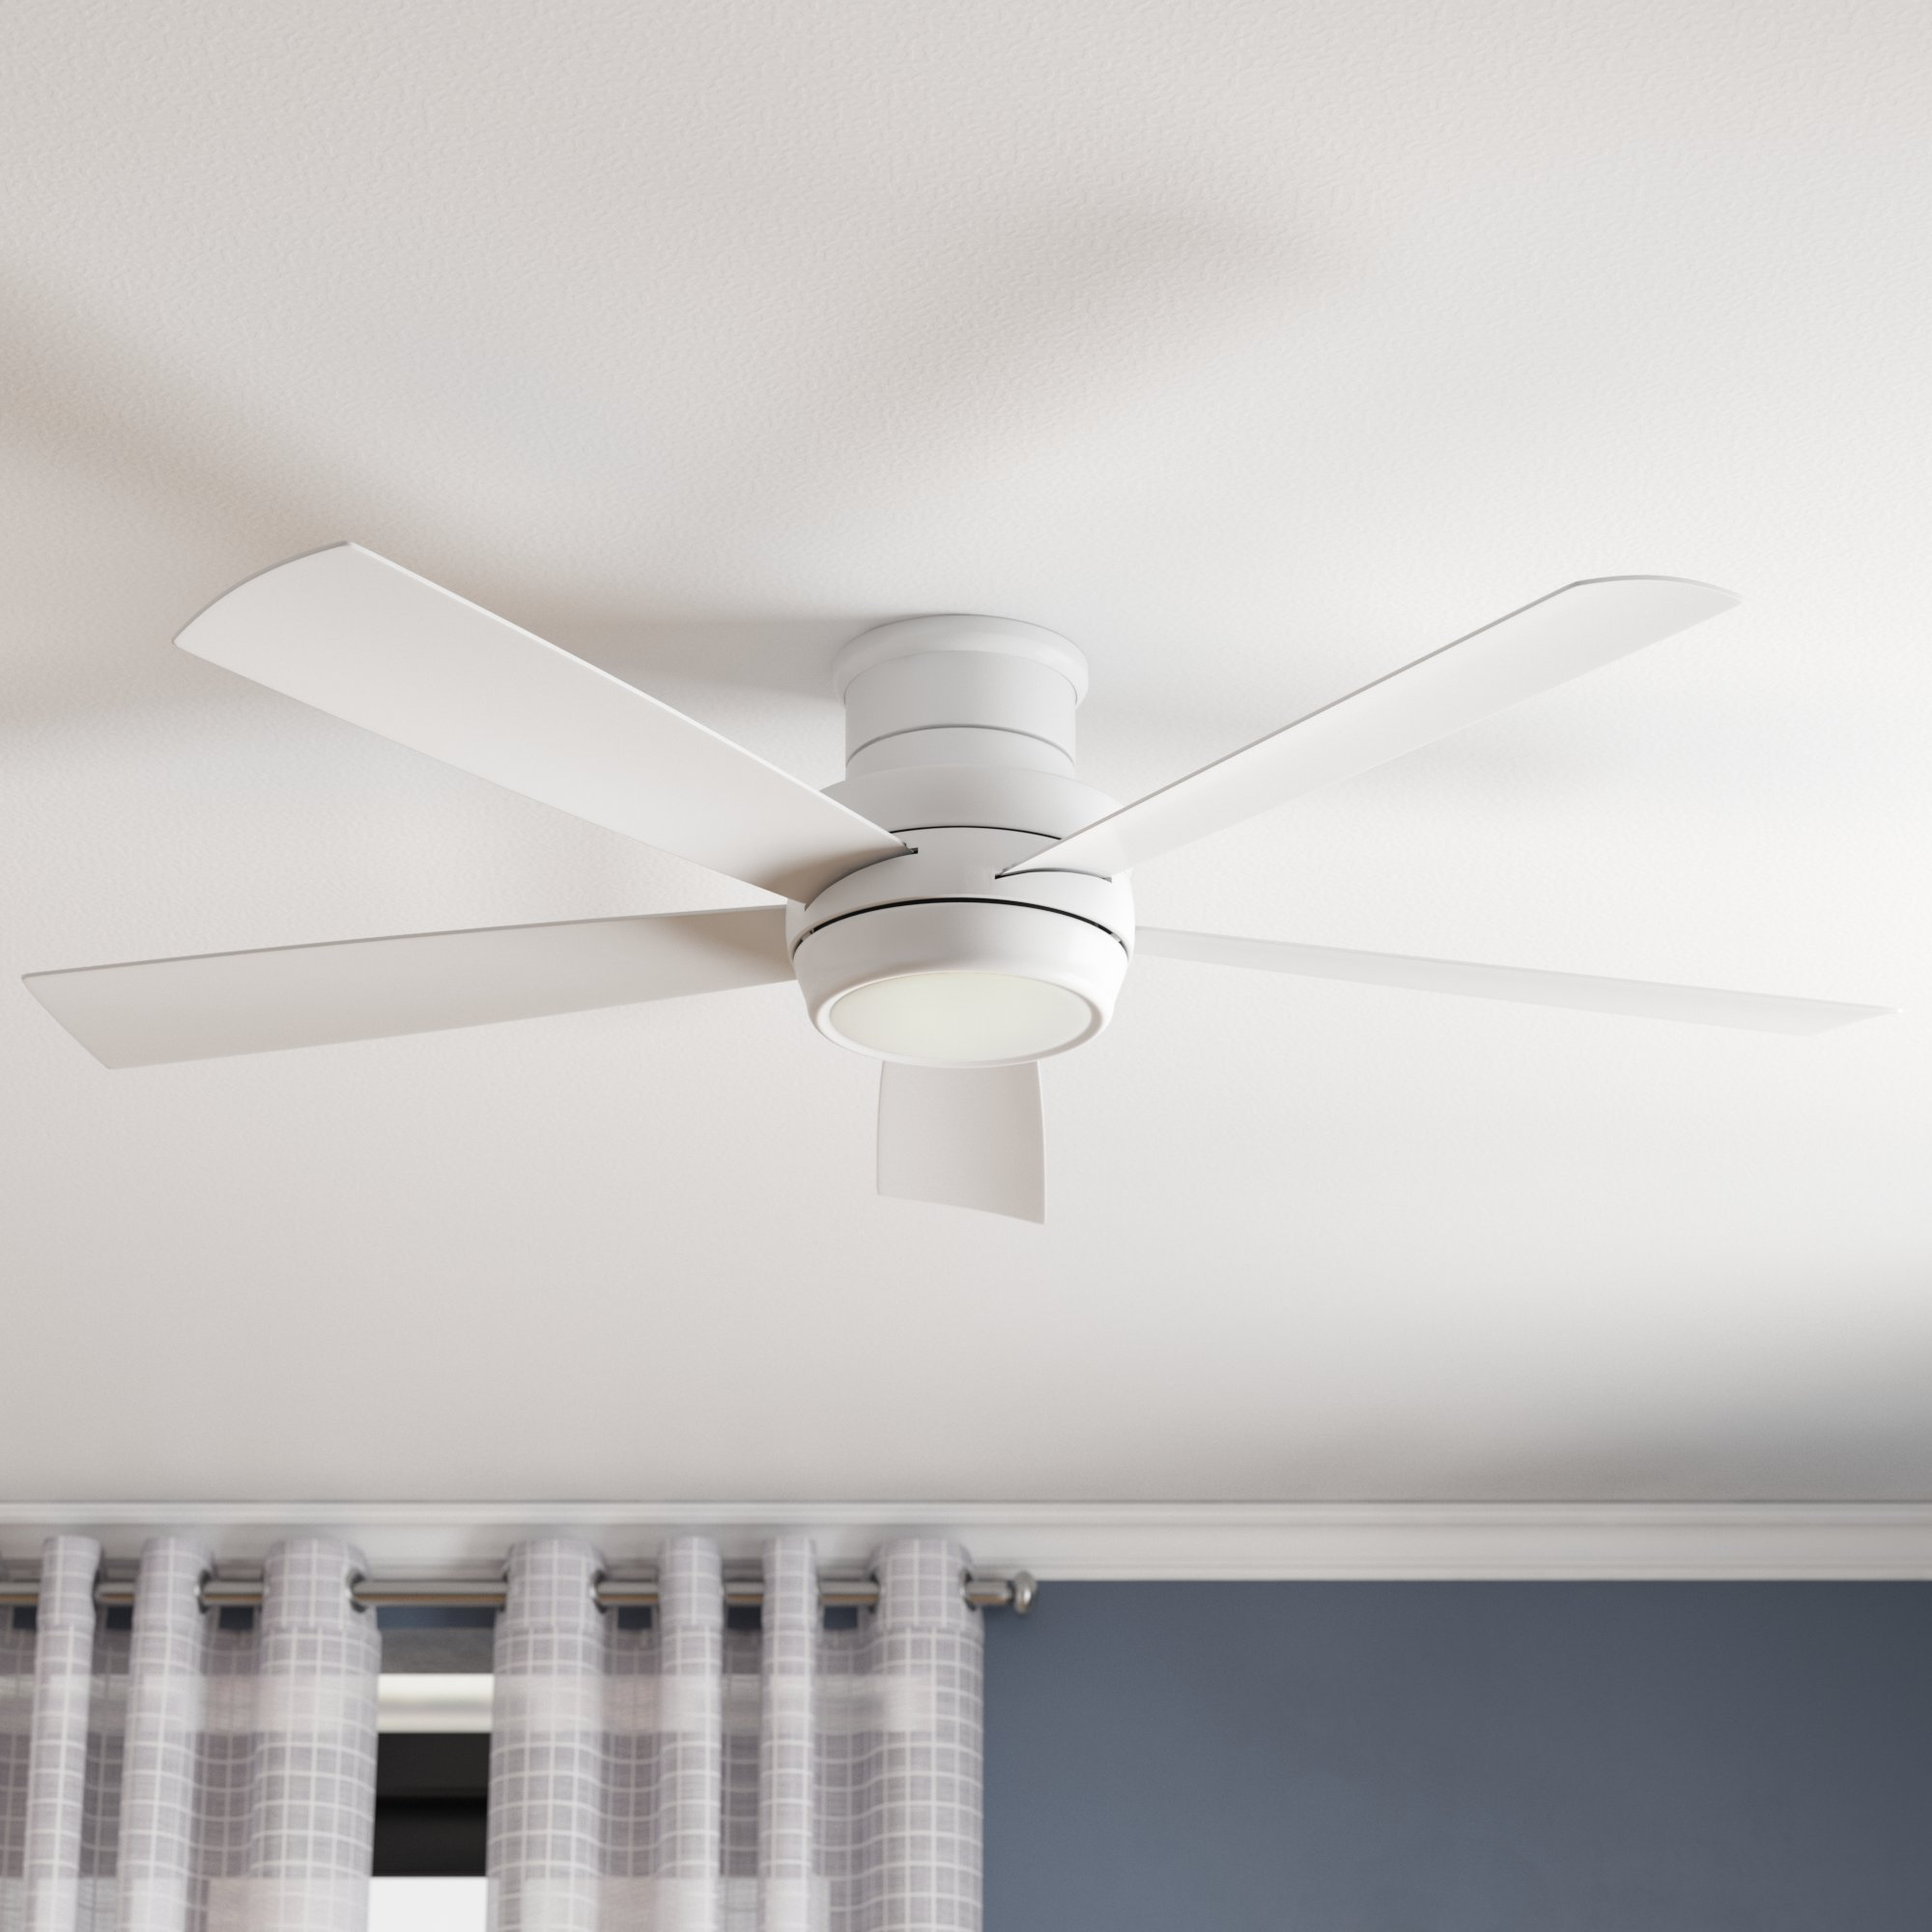 Cedarton 5 Blade Led Ceiling Fans Pertaining To Best And Newest Ceiling : Ceiling Cedarton Blade Led Fan With Remote Light (View 11 of 20)